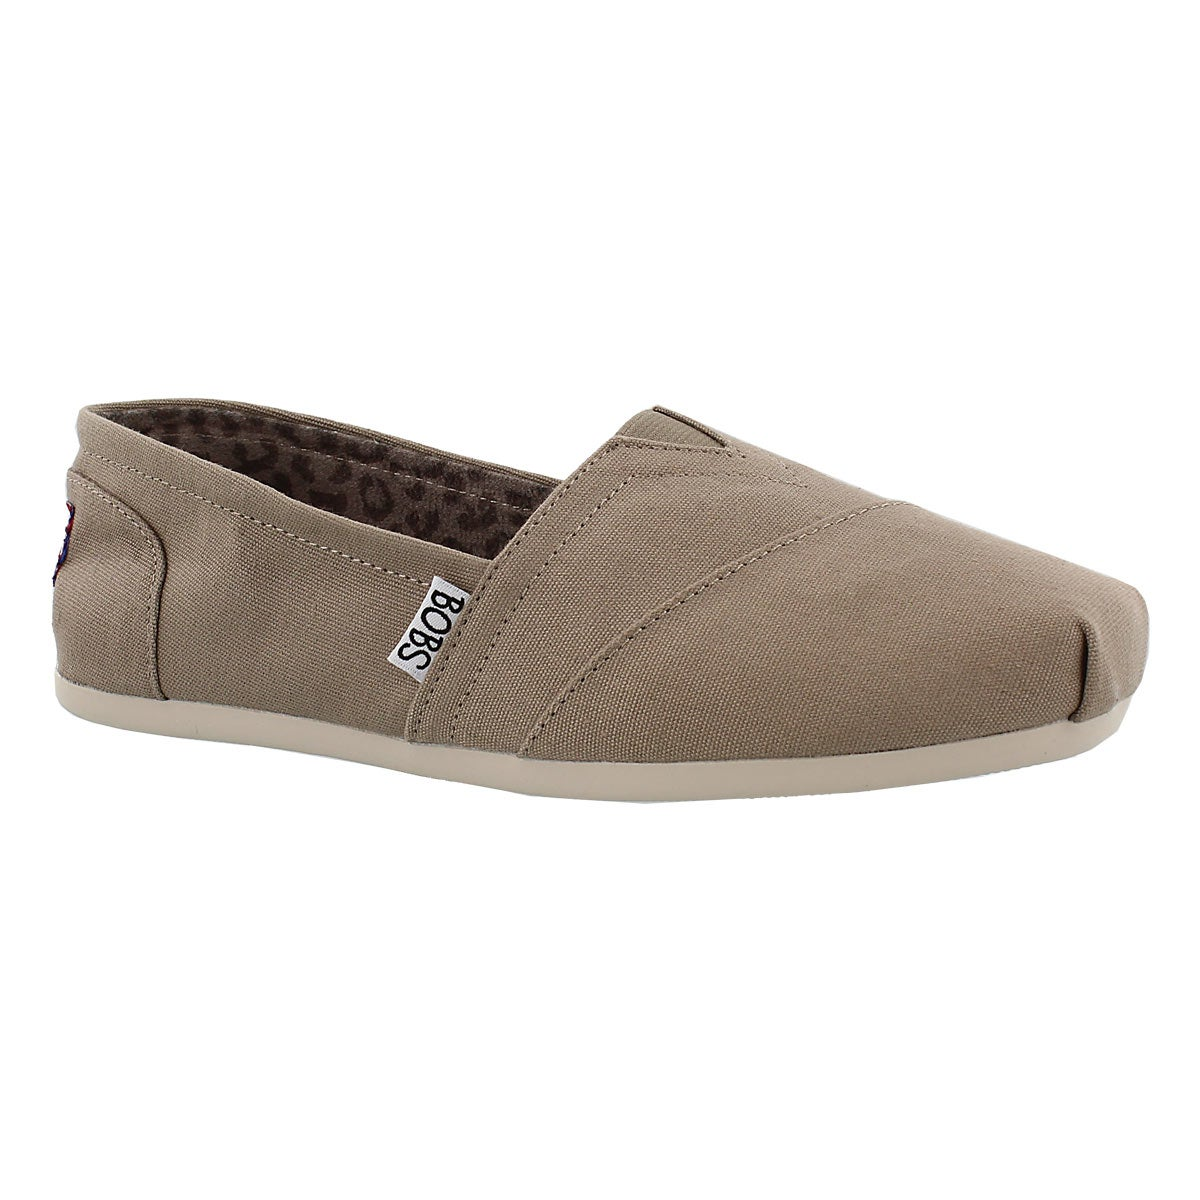 Women's Bobs PLUSH PEACE & LOVE taupe slip ons